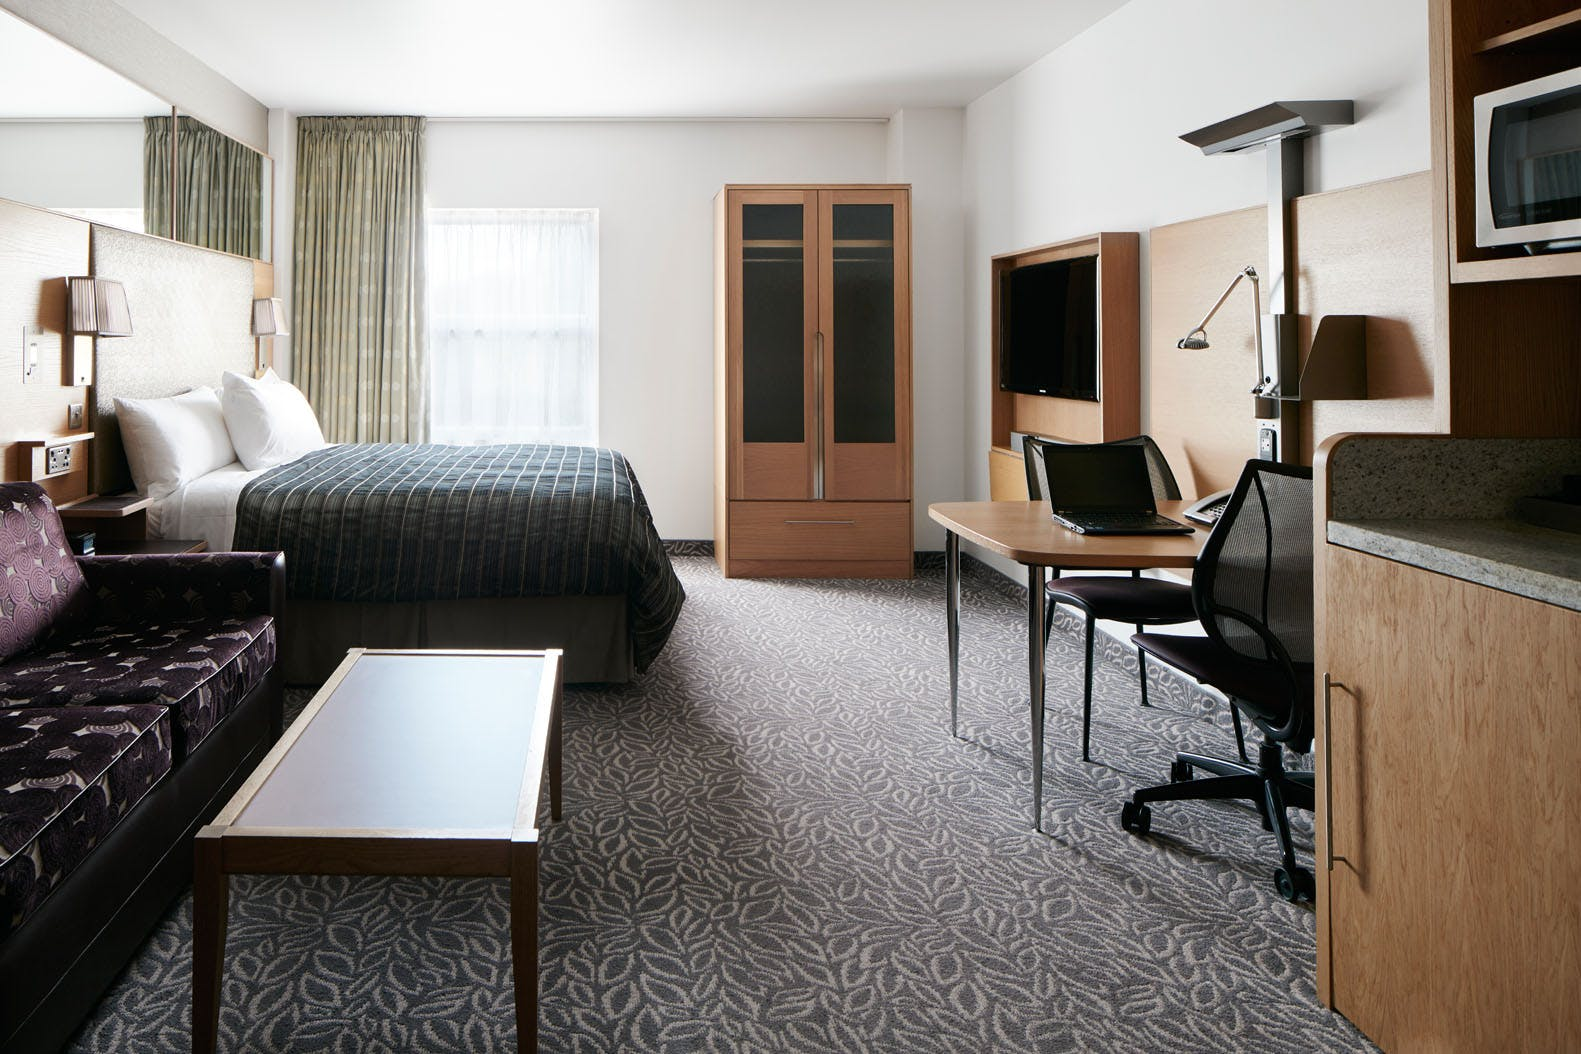 One Room Suite at Club Quarters Hotel, Lincoln's Inn Fields